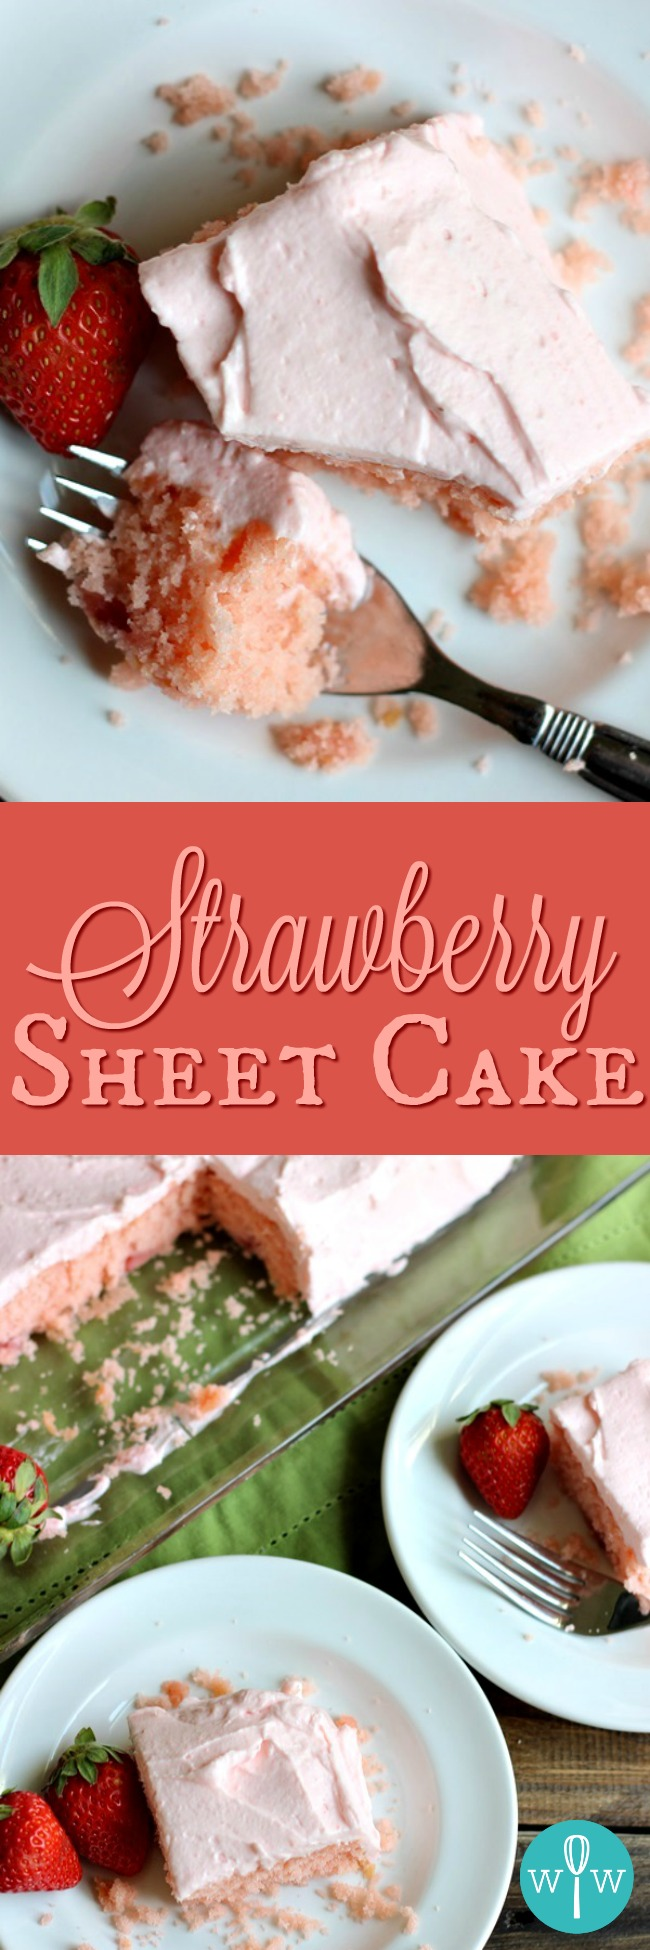 Strawberry Sheet Cake with Whipped Strawberry Frosting - A tender, delicate cake topped with a fluffy whipped frosting and bursting with strawberry flavor. | www.worthwhisking.com